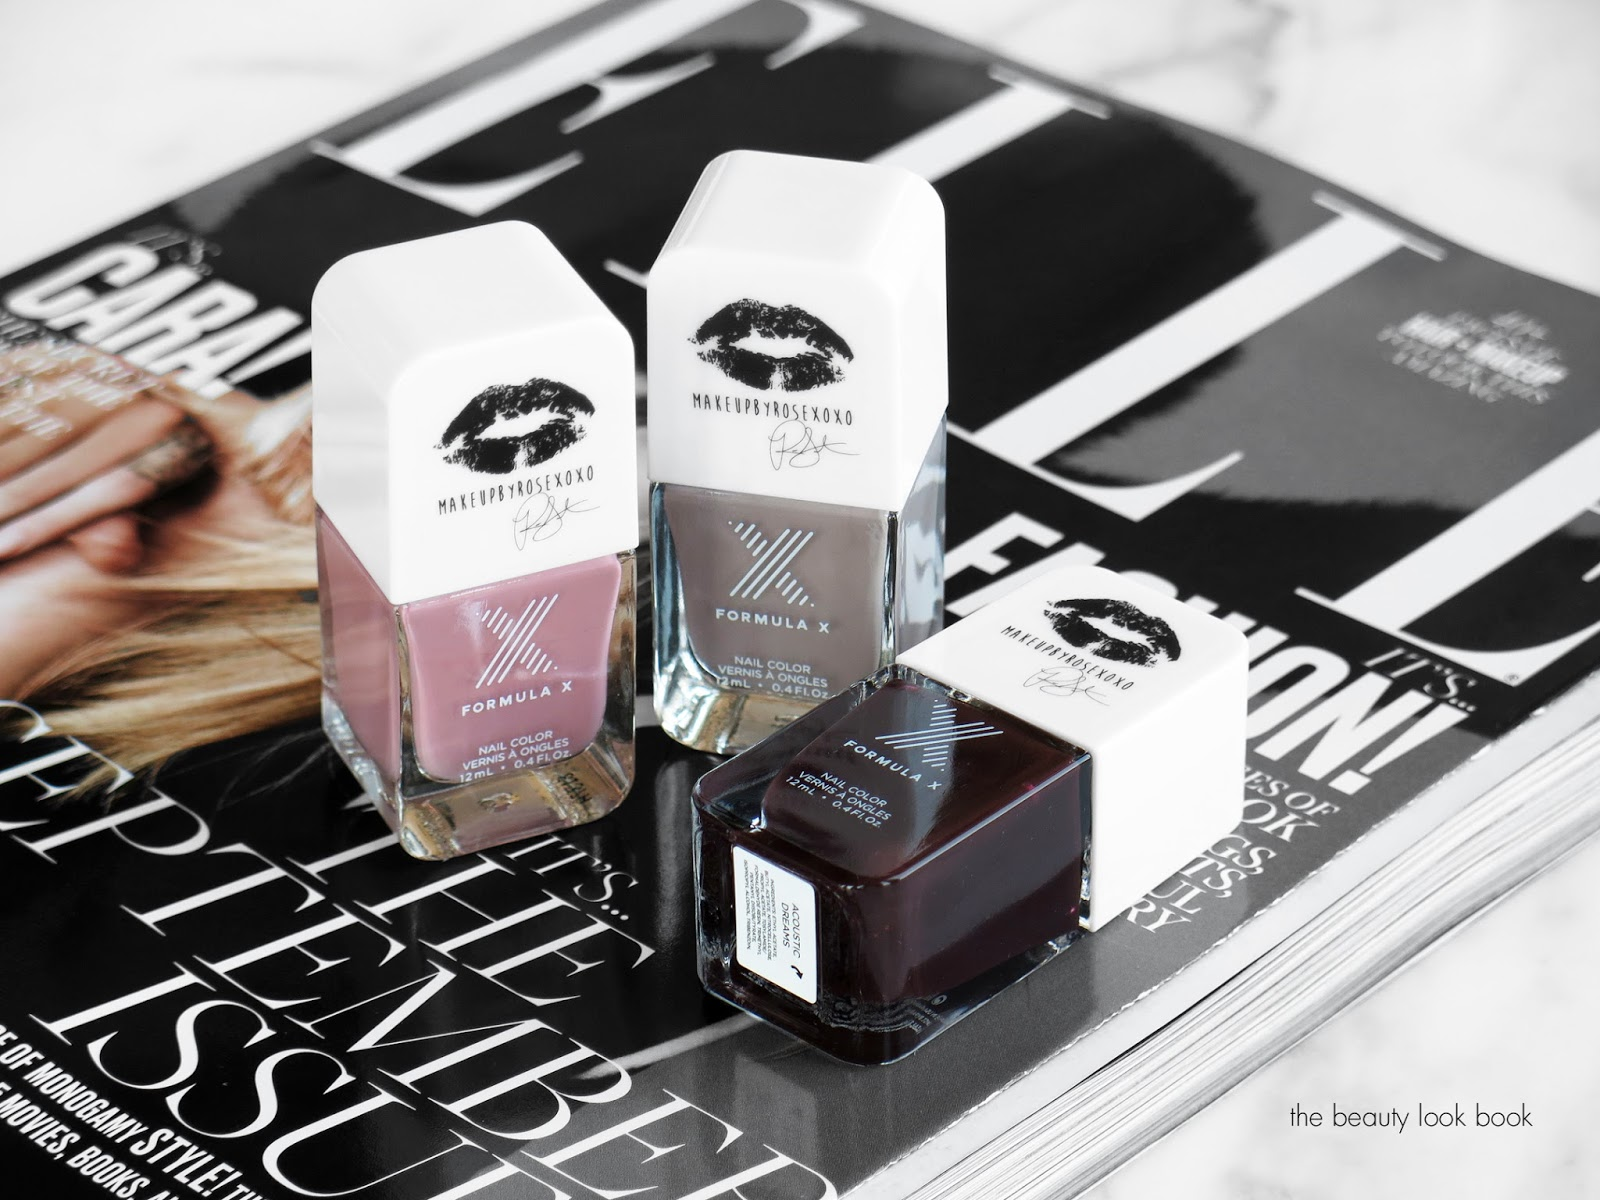 Formula X Archives   The Beauty Look Book